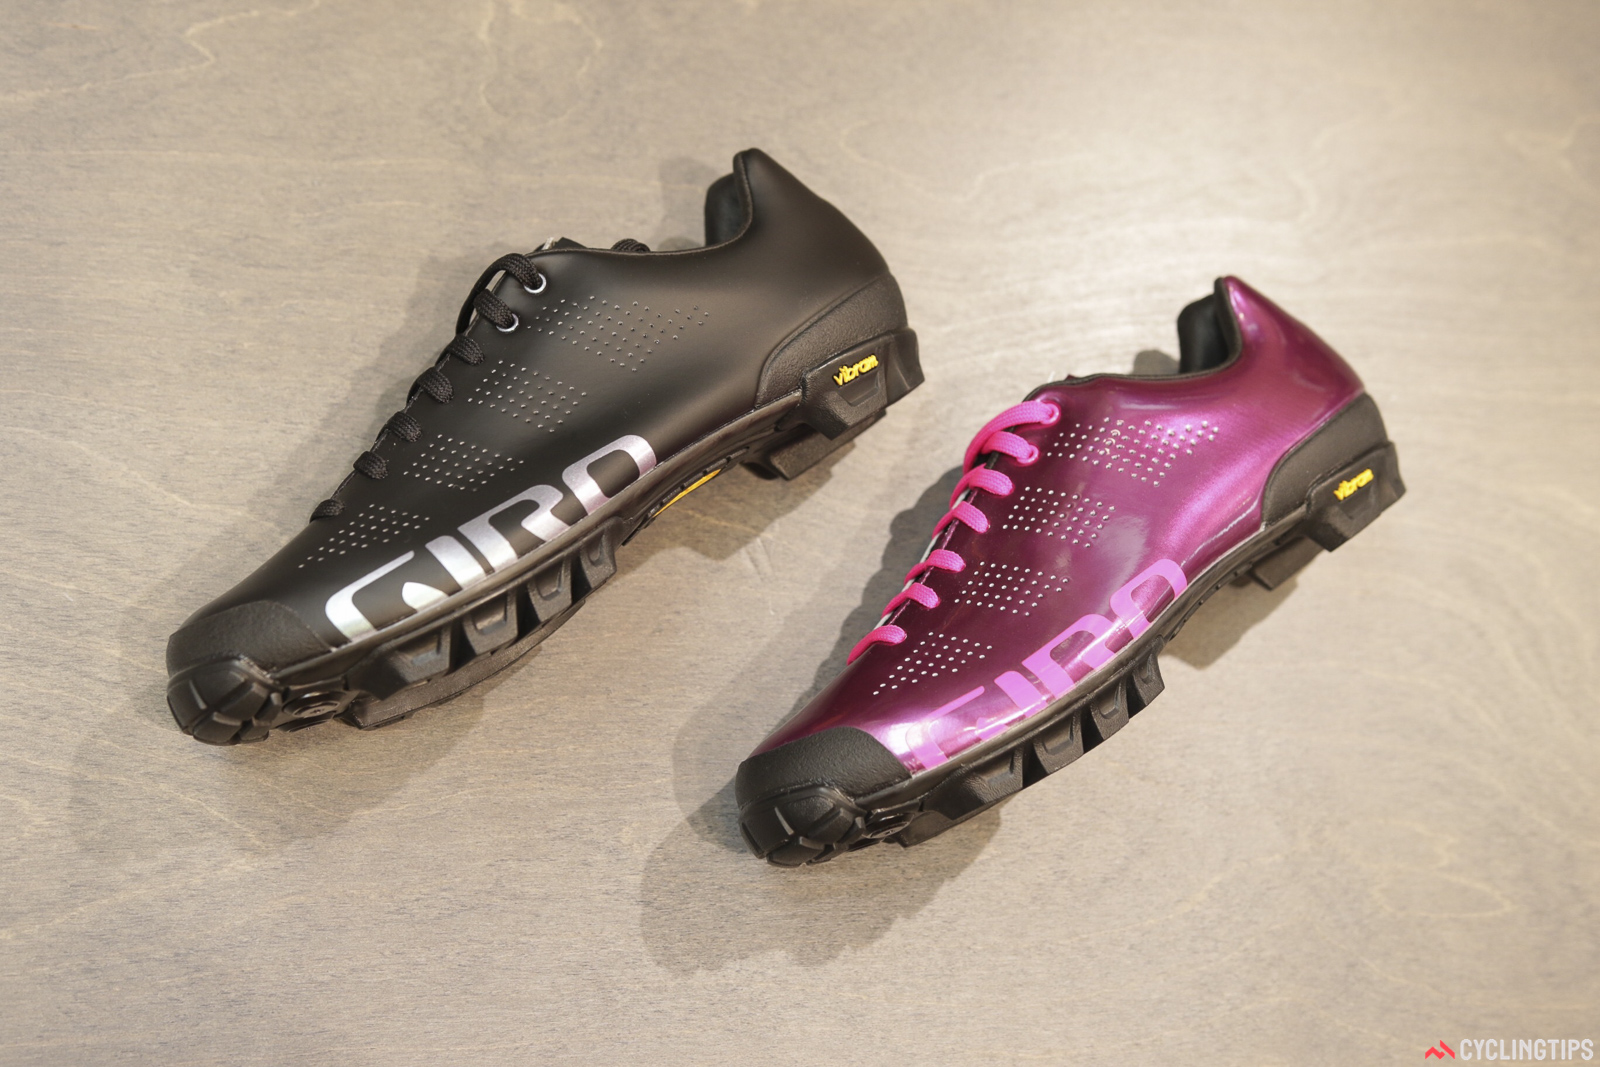 New from Giro is the women's-specific version of the VR90. Two colourways. Photo: David Rome.